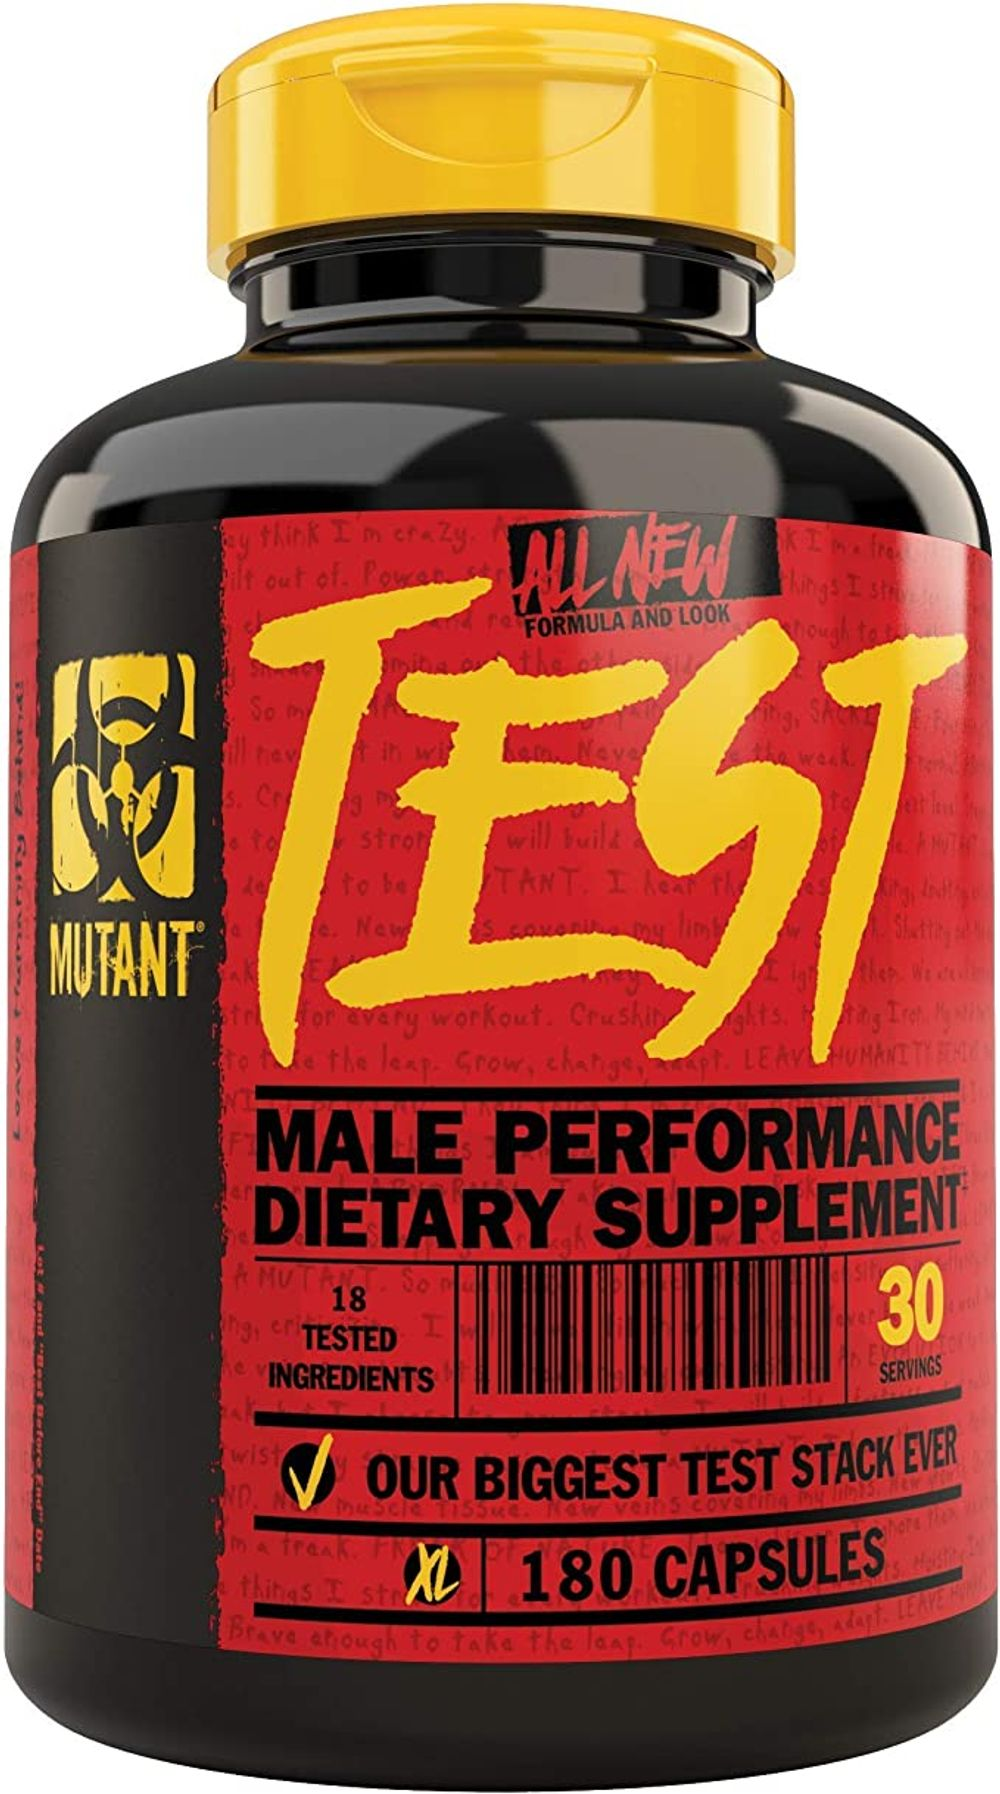 Mutant Test Natural Testosterone Booster with a Powerful Anabolic Formula Developed to Boost